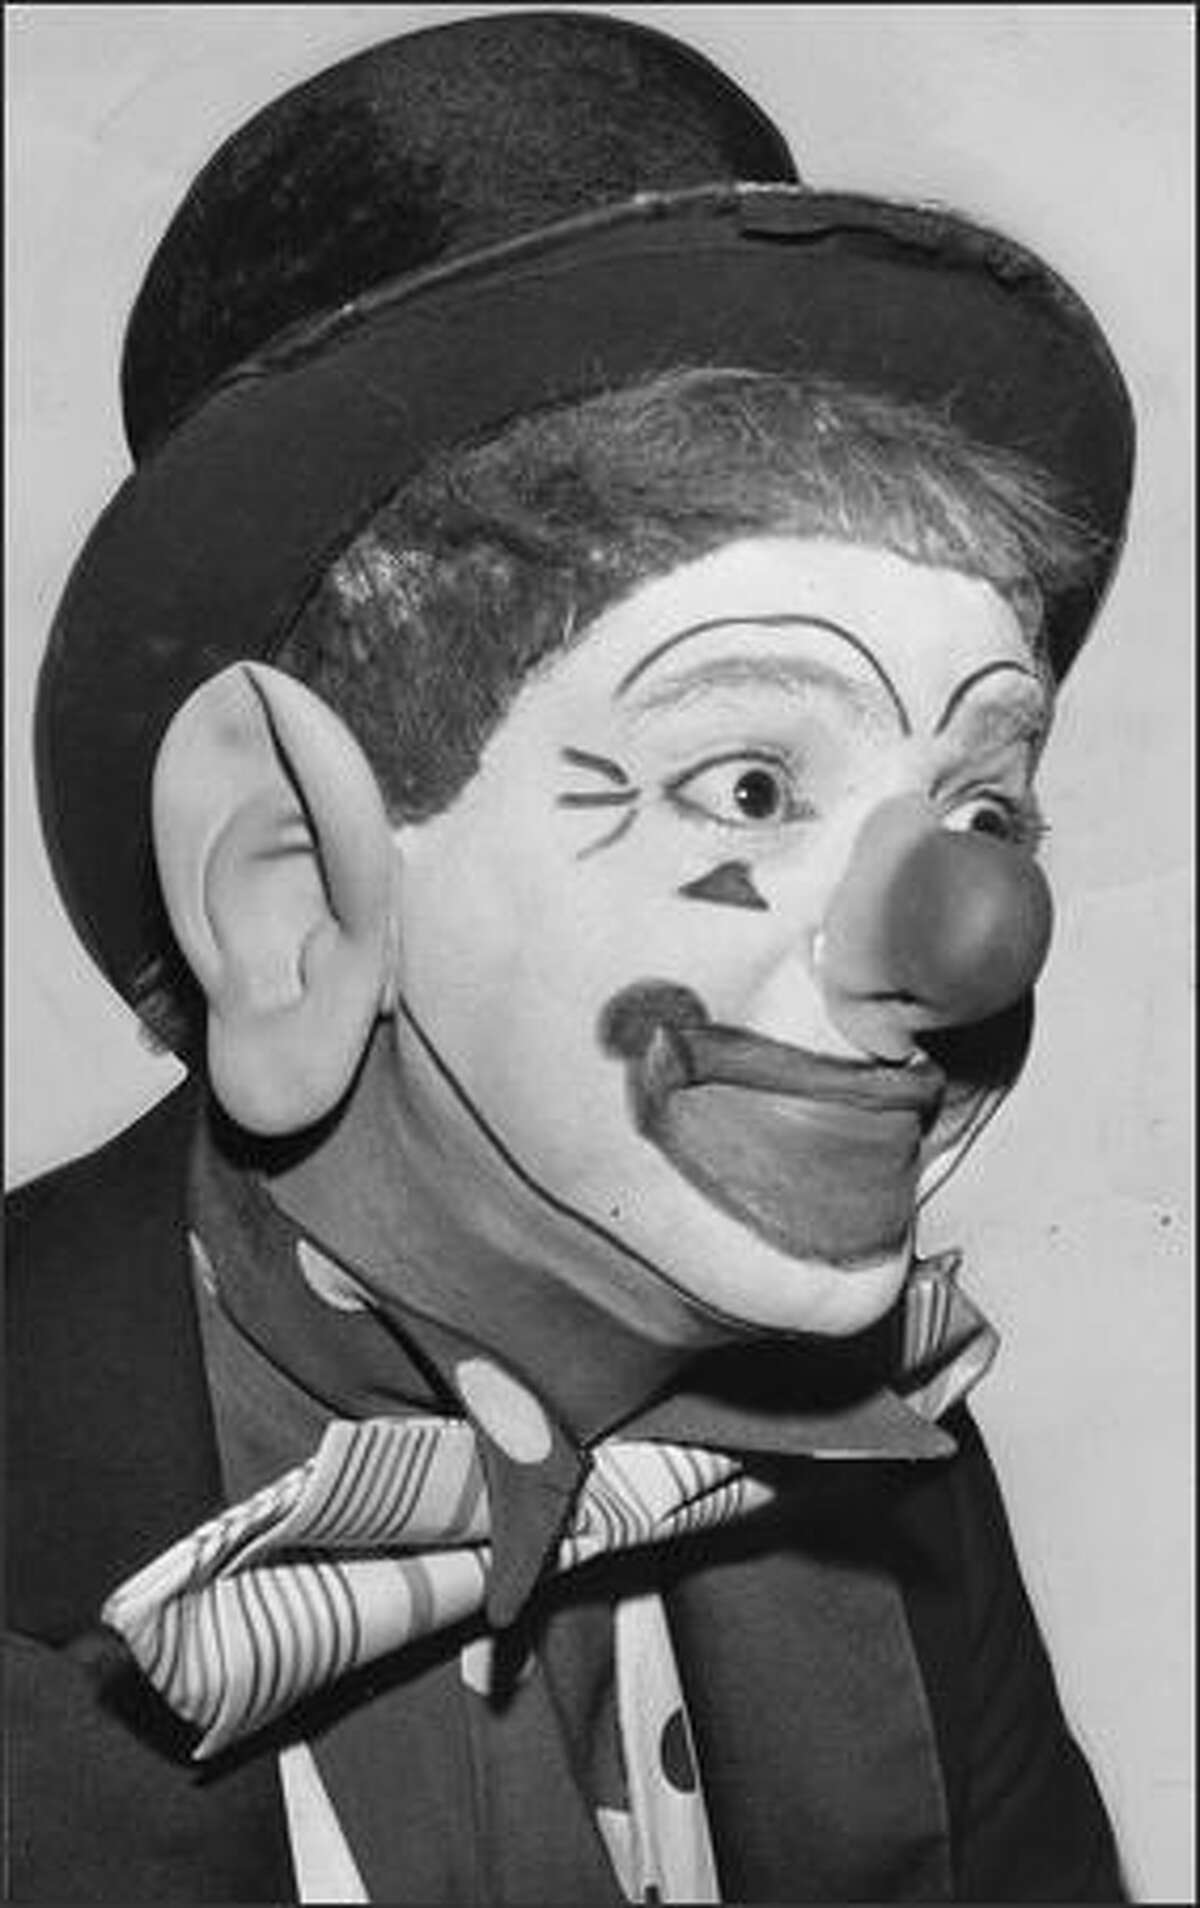 J.P. Patches (portrayed by Chris Wedes) in 1958.